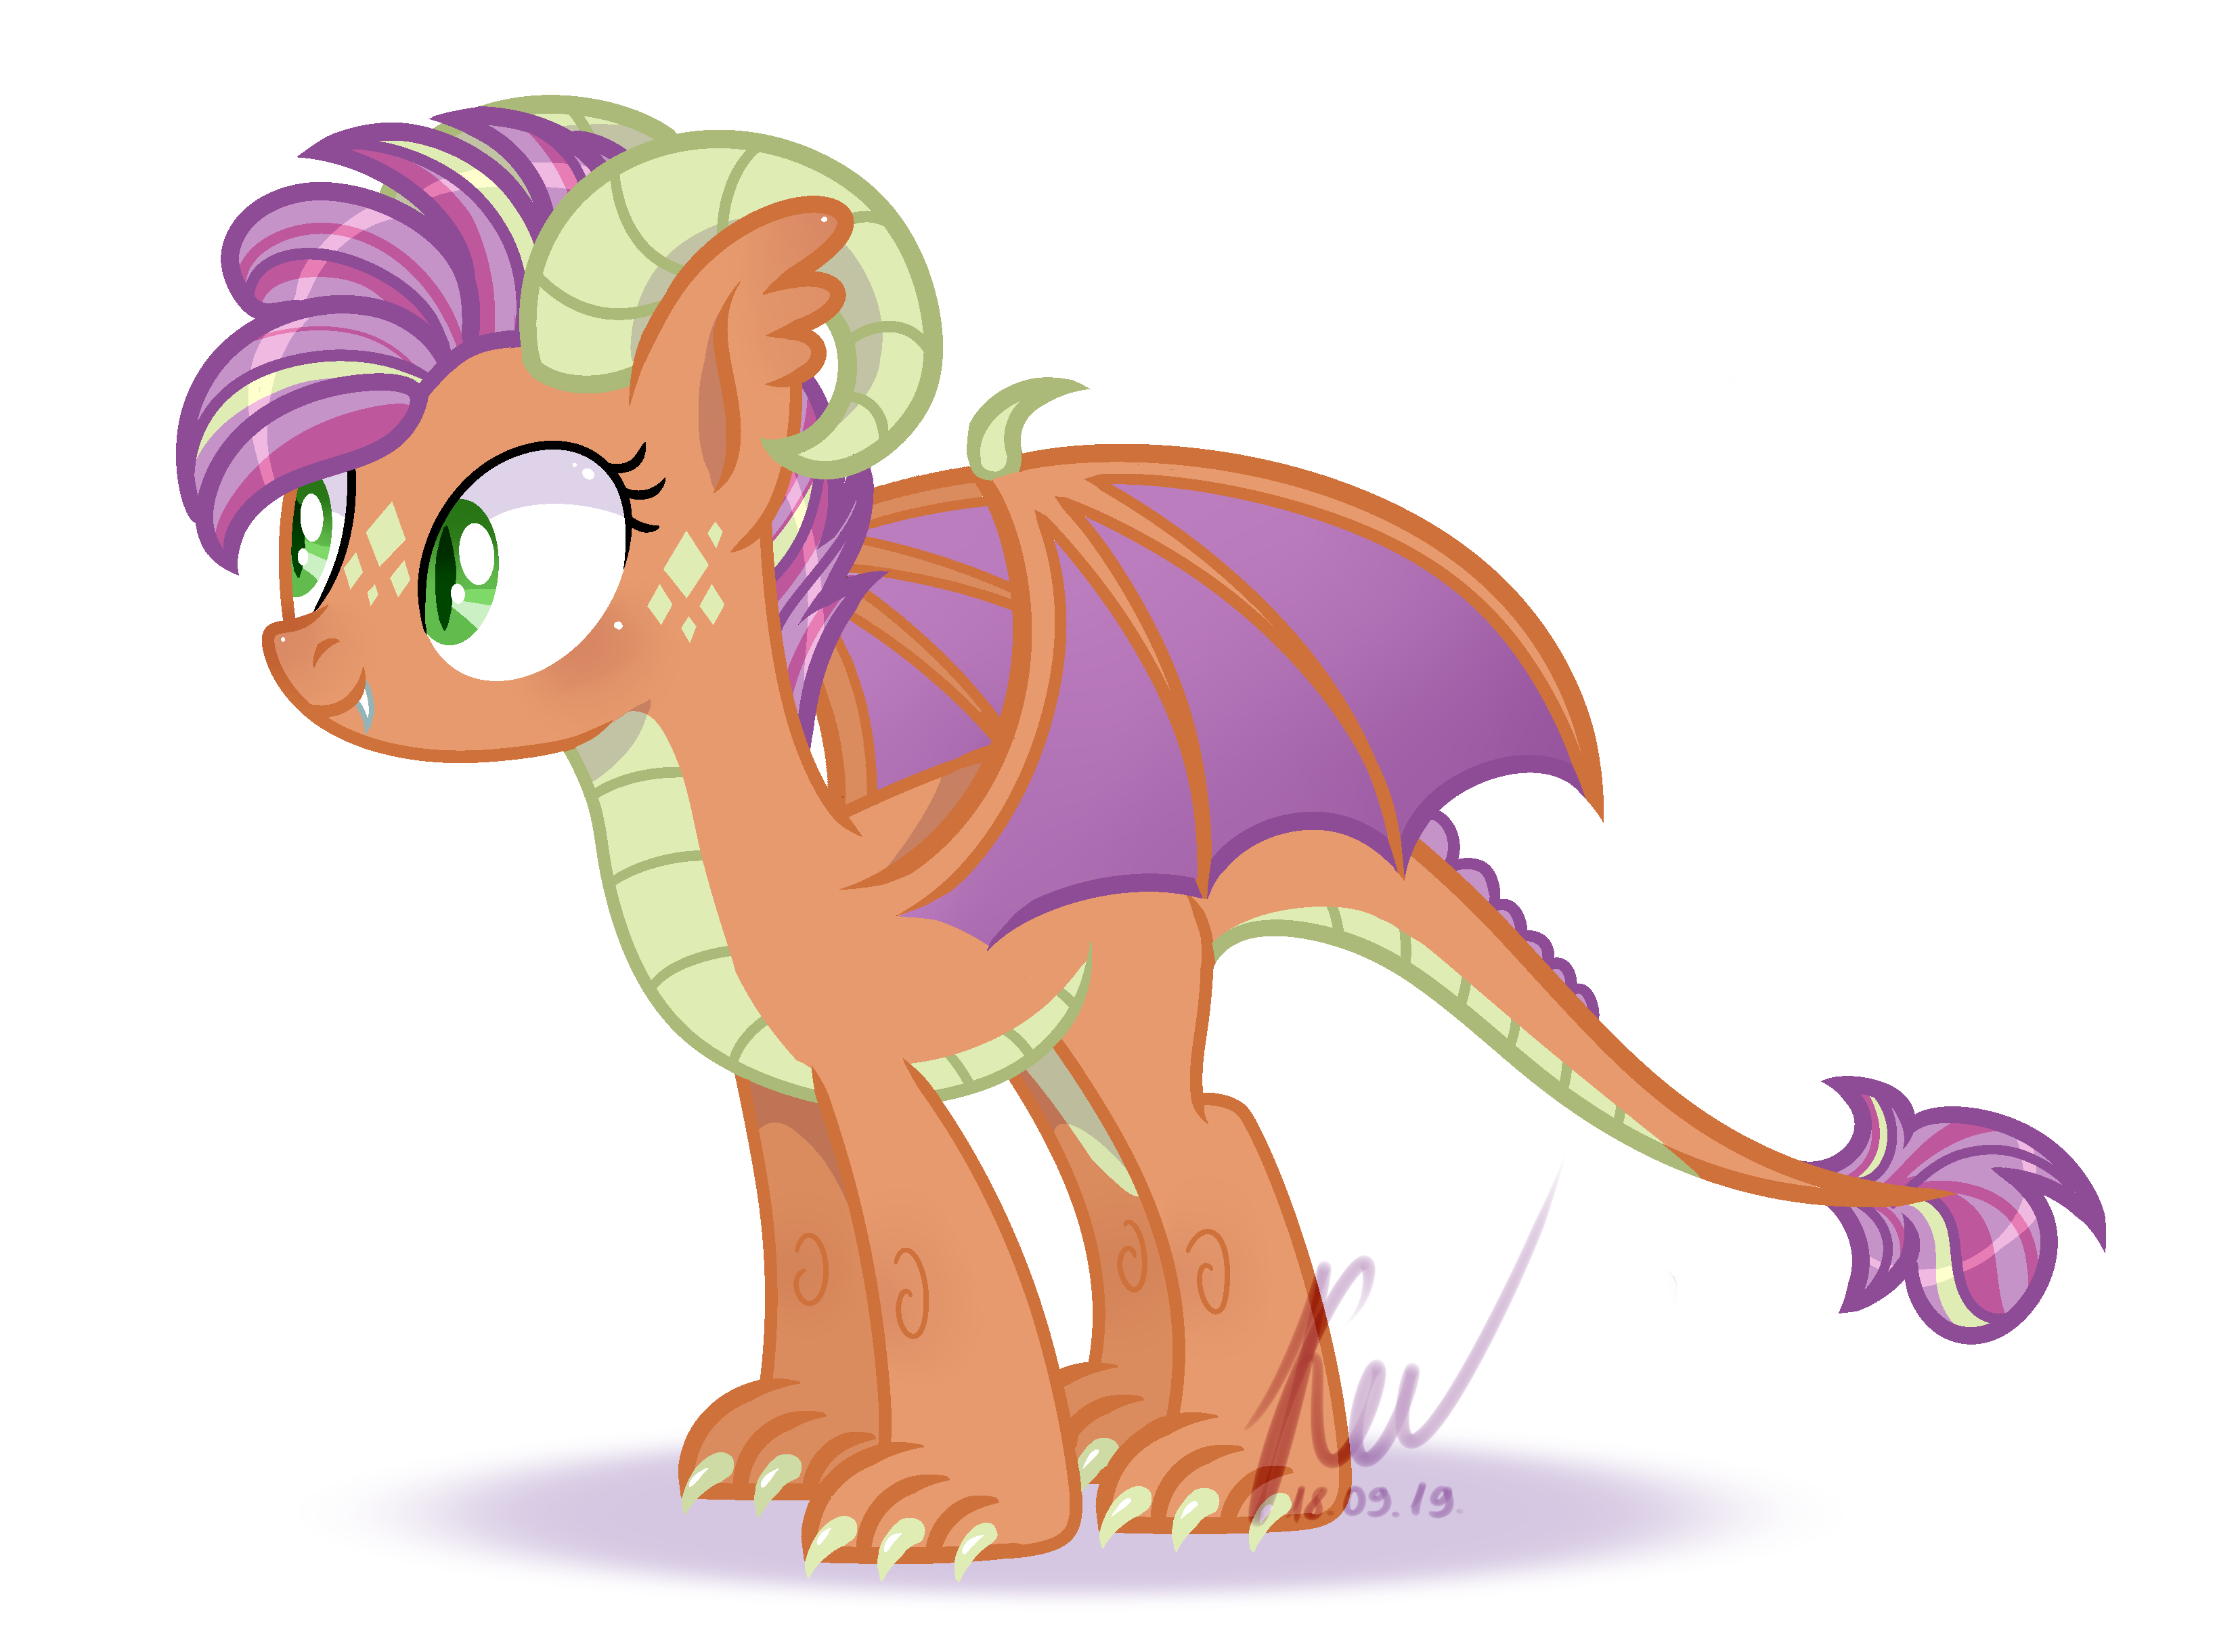 Mlp Next Gen Spike X Scootaloo Redesign By Kayotanv87 On Deviantart Roughly 3 years after the gaining of the cmc's cutie marks, scootaloo proposed the idea of letting some colts into the group of fillies. mlp next gen spike x scootaloo